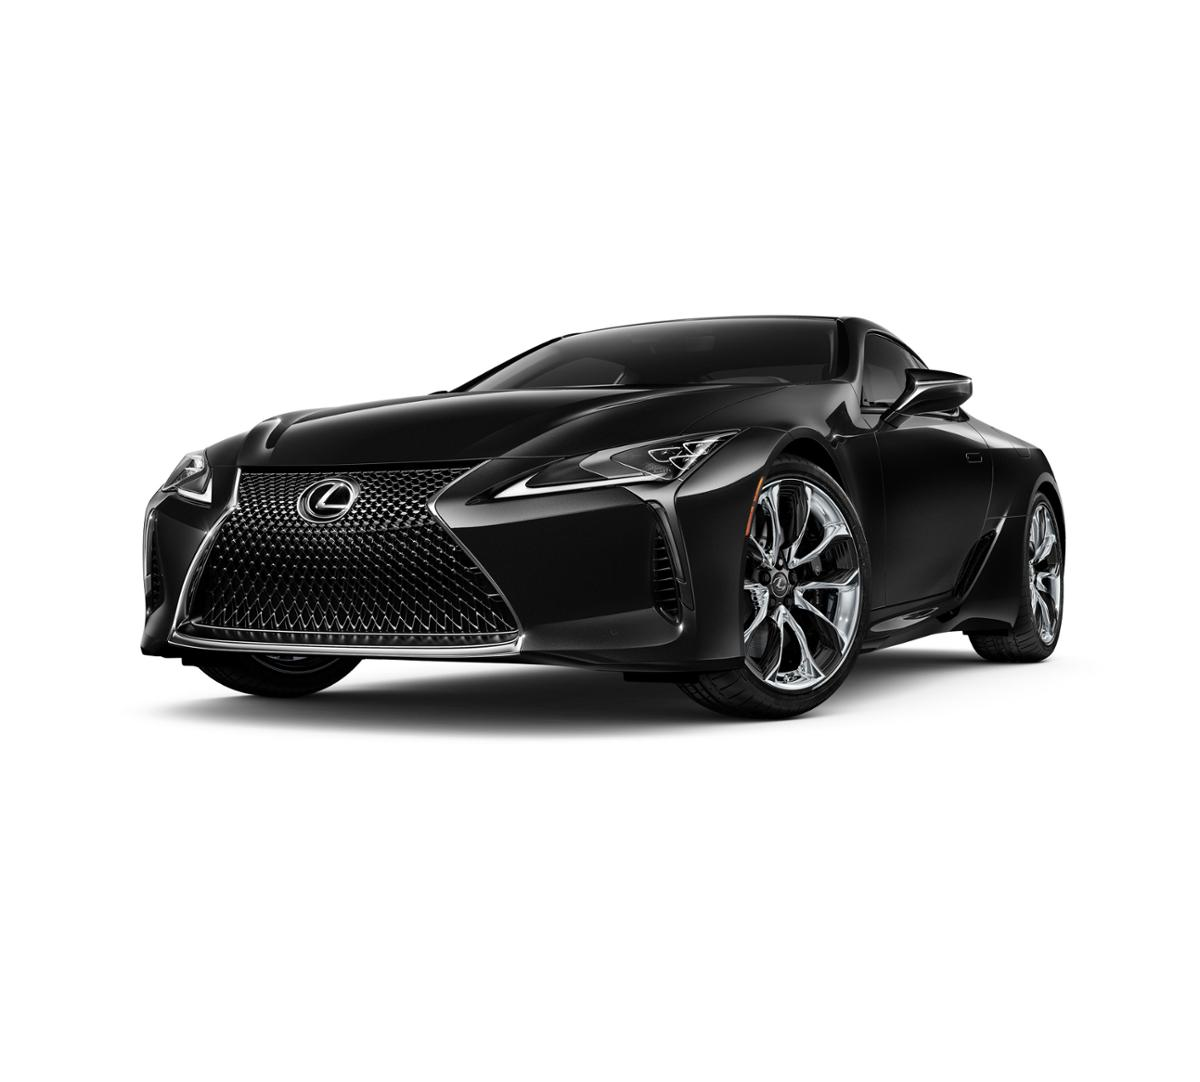 2018 Lexus LC 500 Vehicle Photo in Charlotte, NC 28212